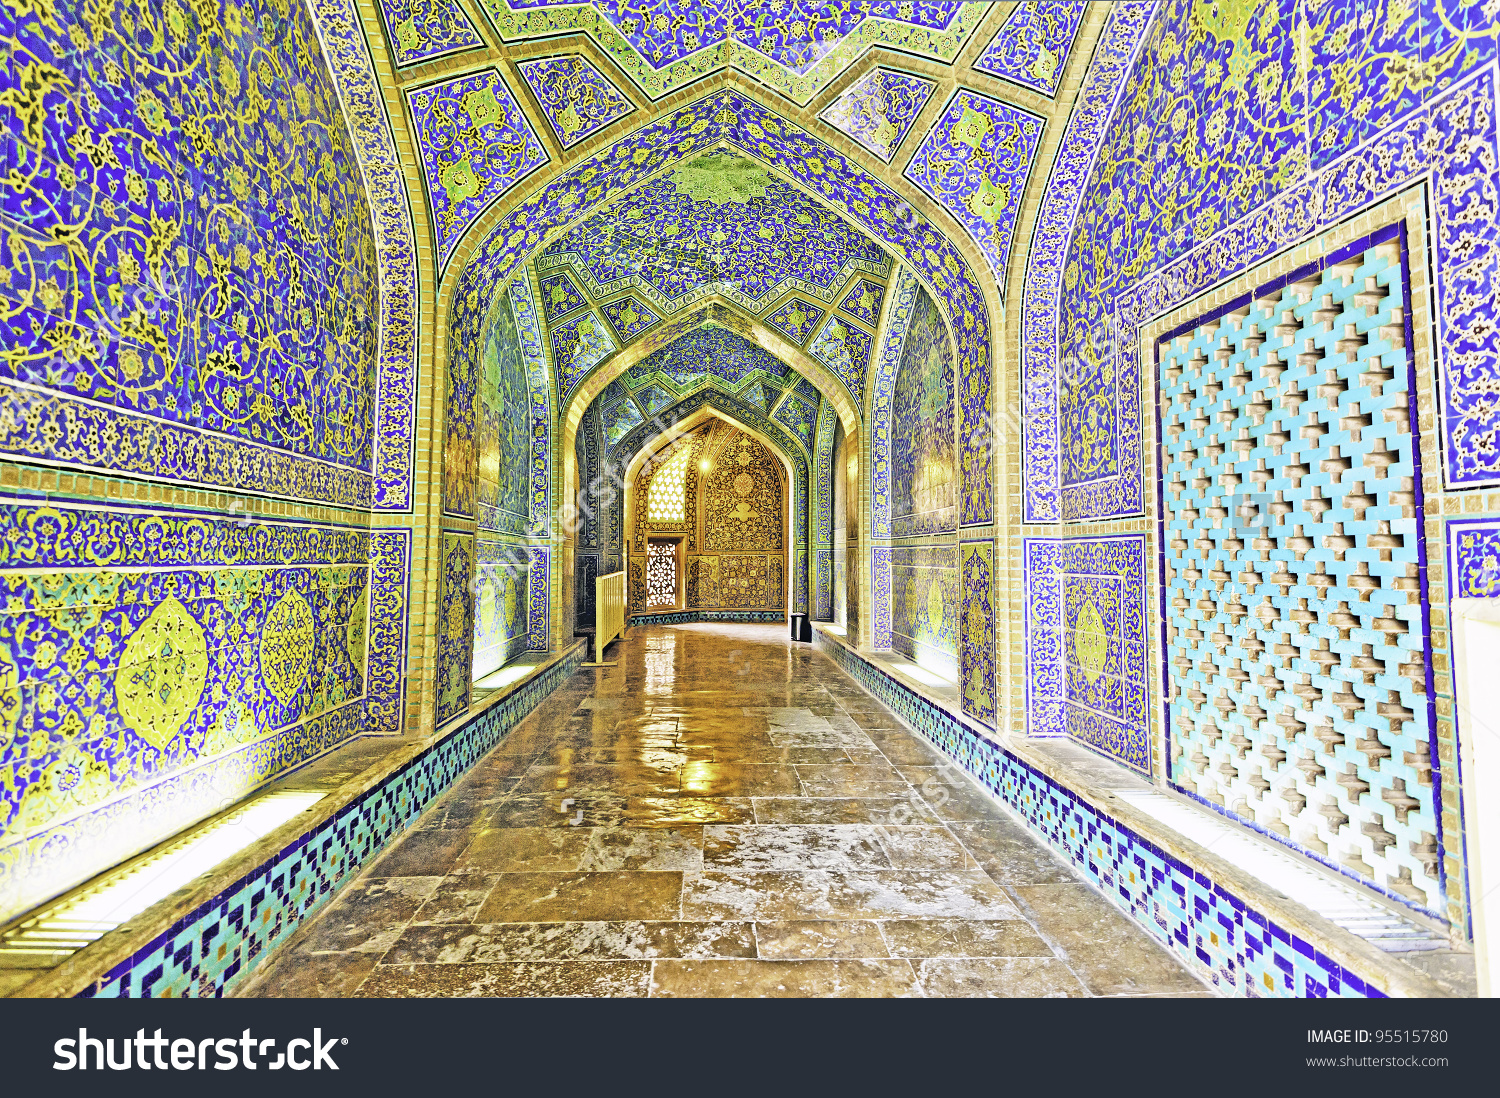 sheikh-lotfollah-mosque-at-naqsh-e-jahan-square-in-isfahan-iran-construction-of-the-mosque